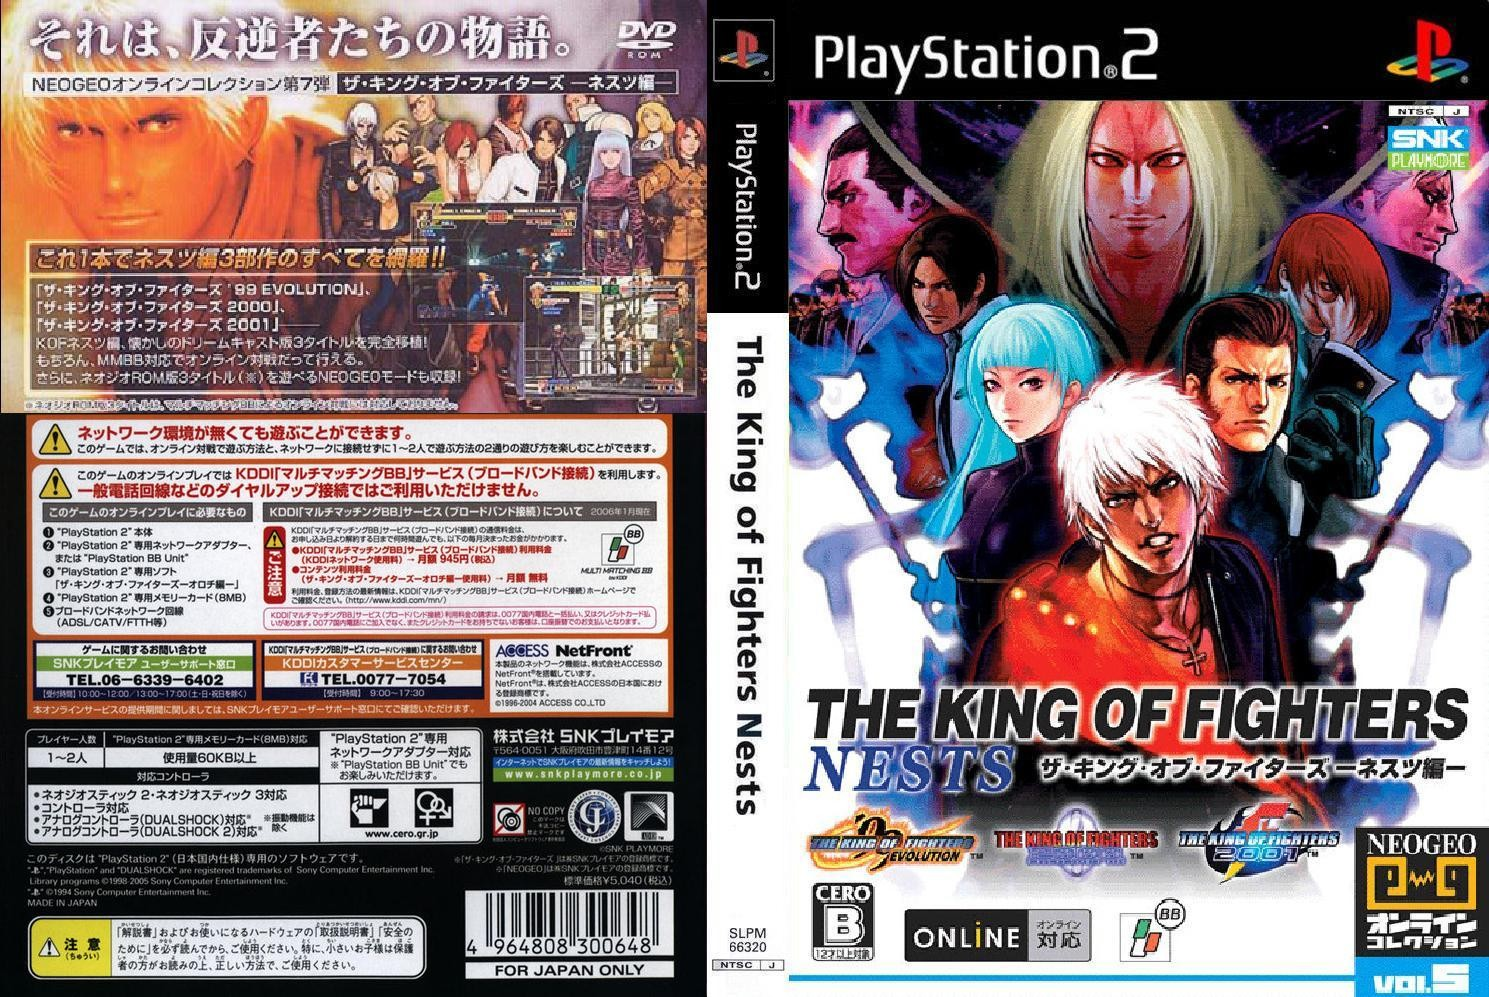 The King Of Fighters 2002 Unlimited Match Ps2 Iso Torrent Whatbc